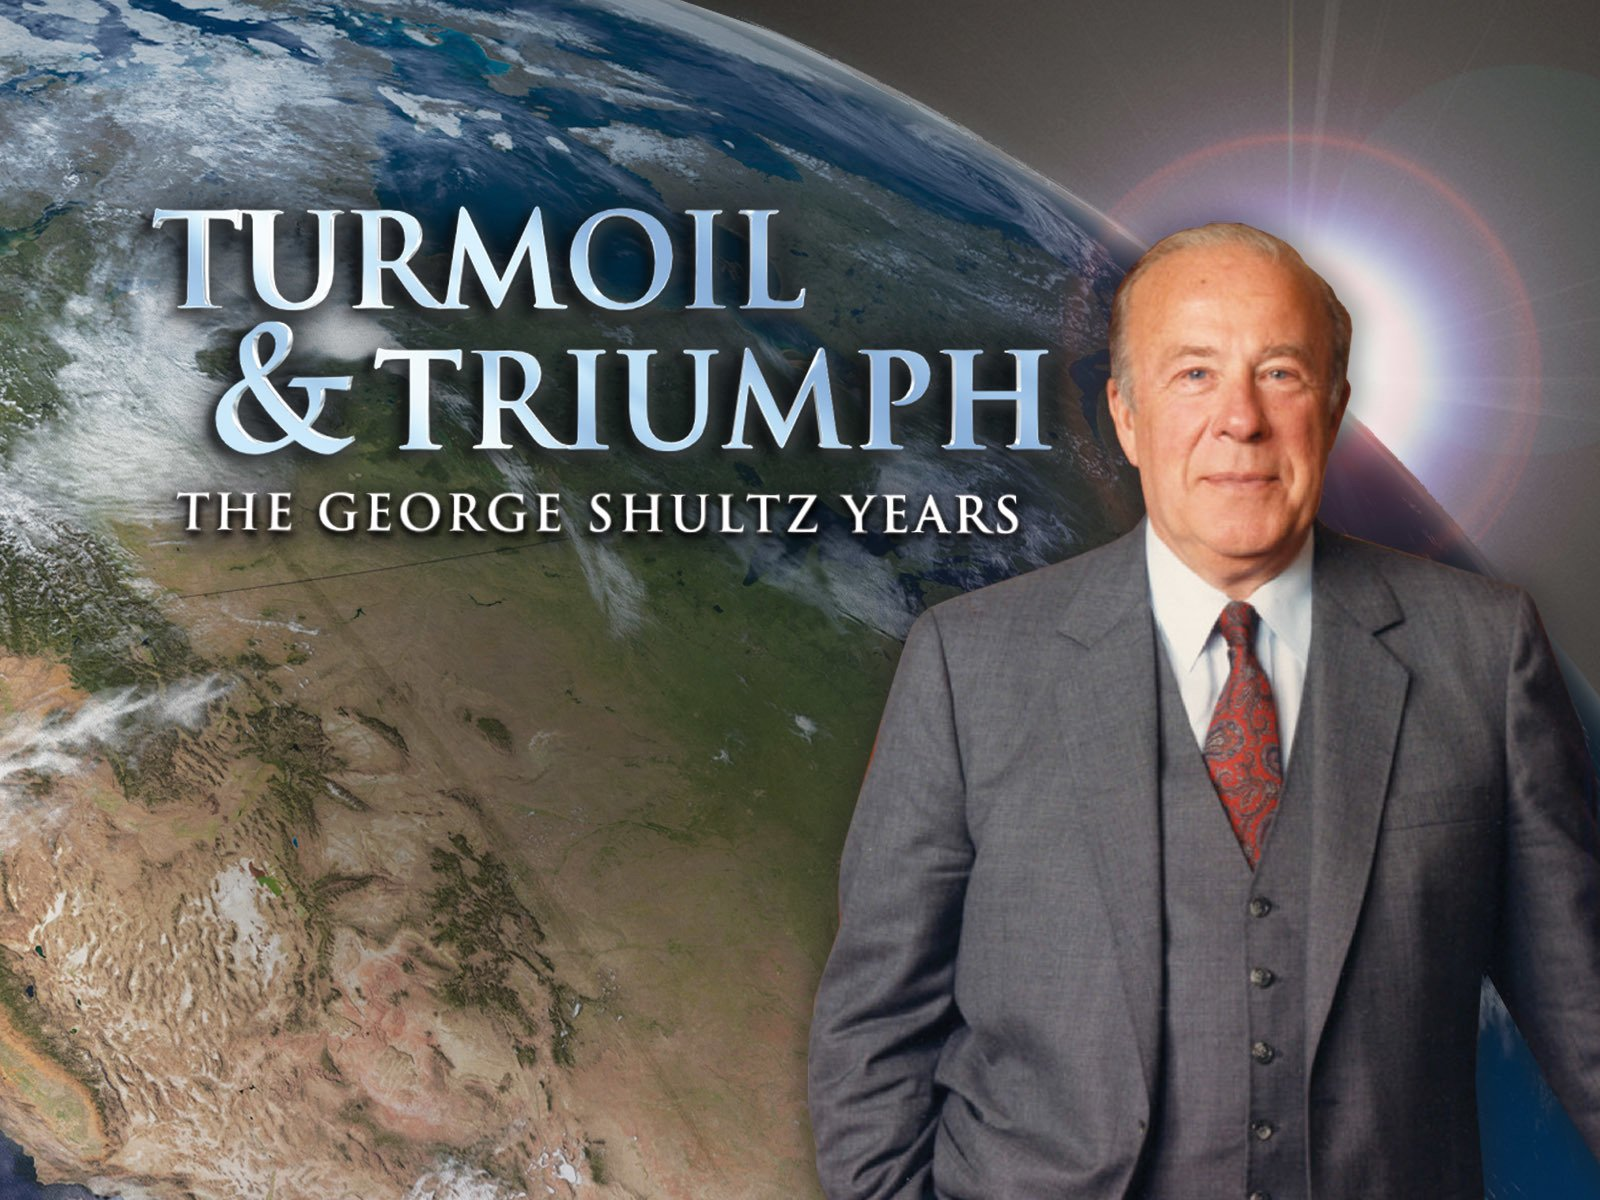 Turmoil & Triumph: The George Shultz Years